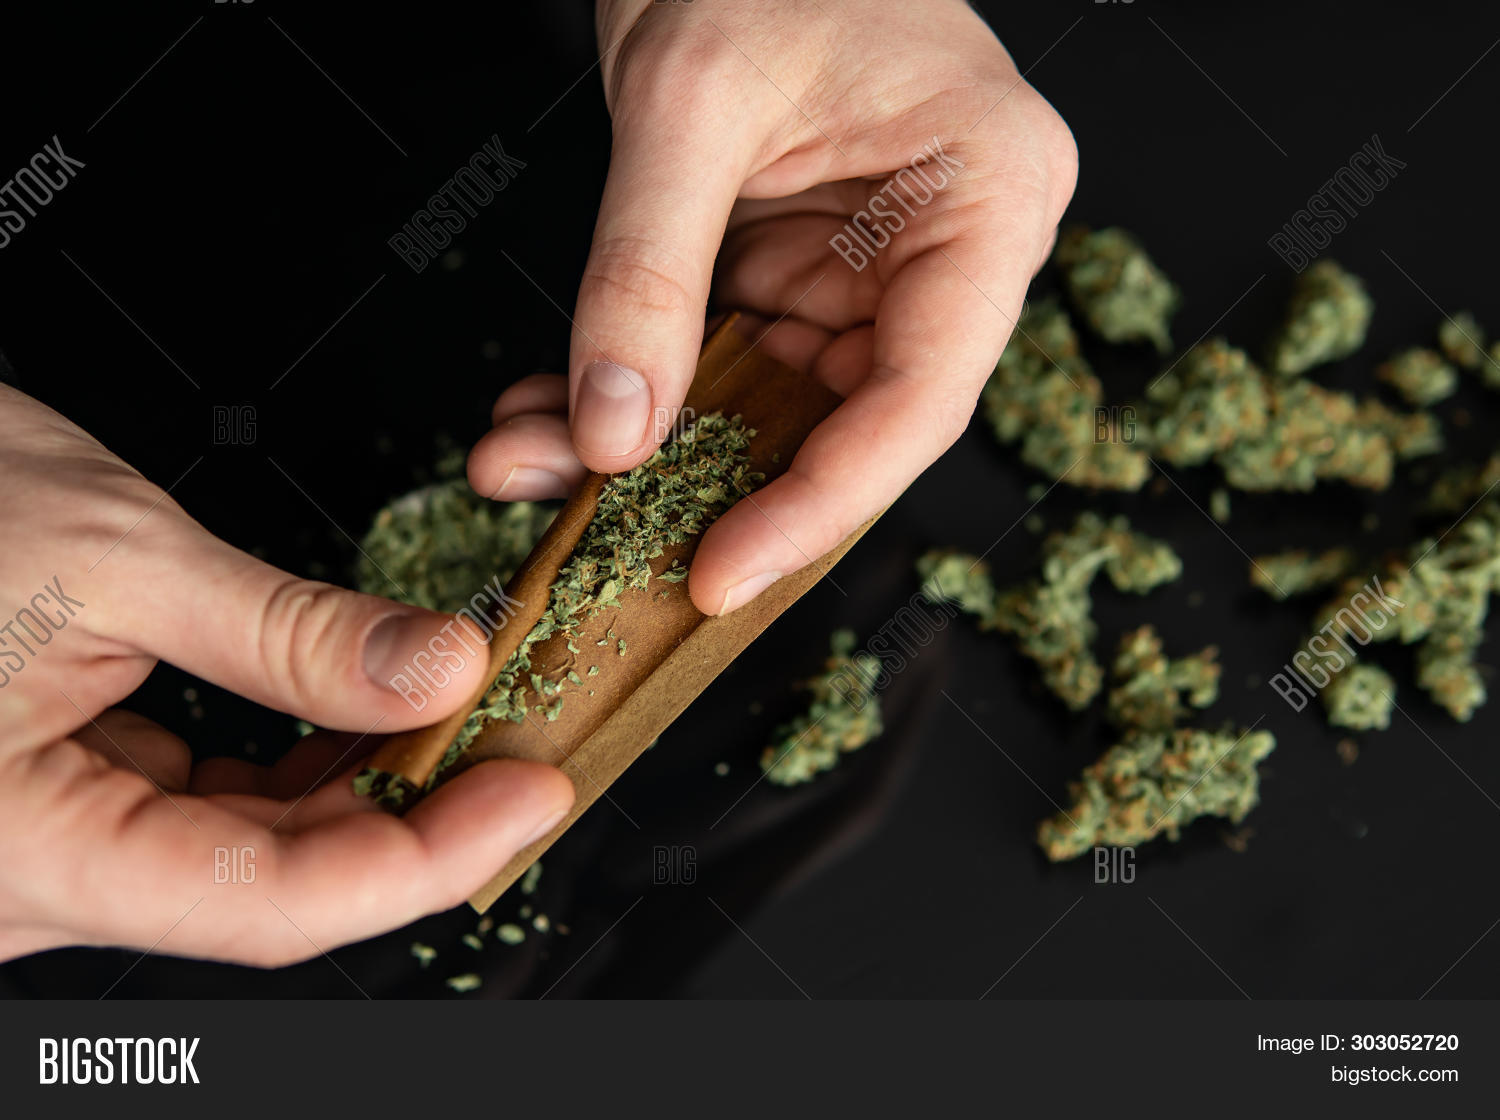 addiction,alternative,background,cannabis,cigarette,closeup,drug,filter,grass,habit,hand,hashish,illegal,joint,leaf,marihuana,marijuana,medicine,narcotic,paper,person,pot,roll,rolling,smoke,smoking,tobacco,unhealthy,up,weed